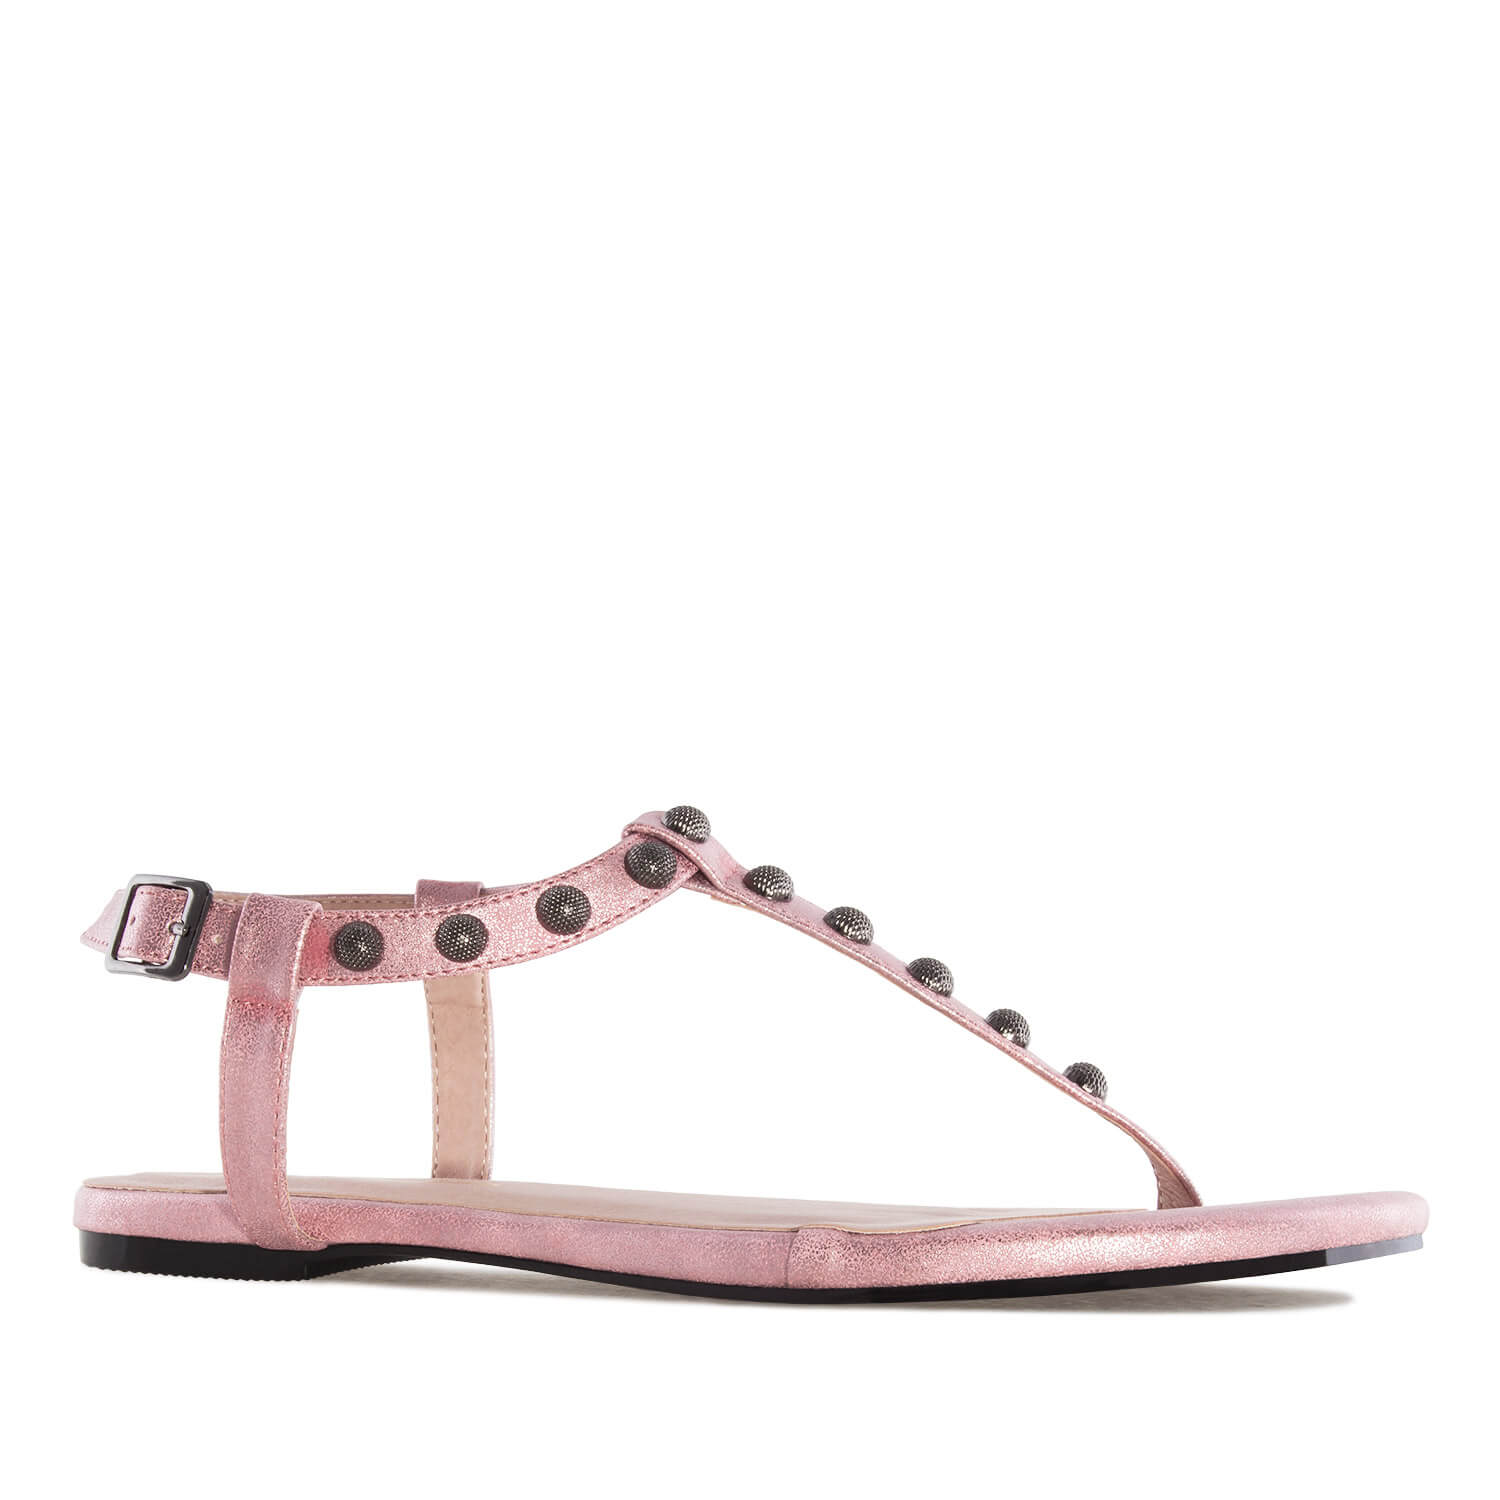 Sandalia T-Bar en Brillo Rosa